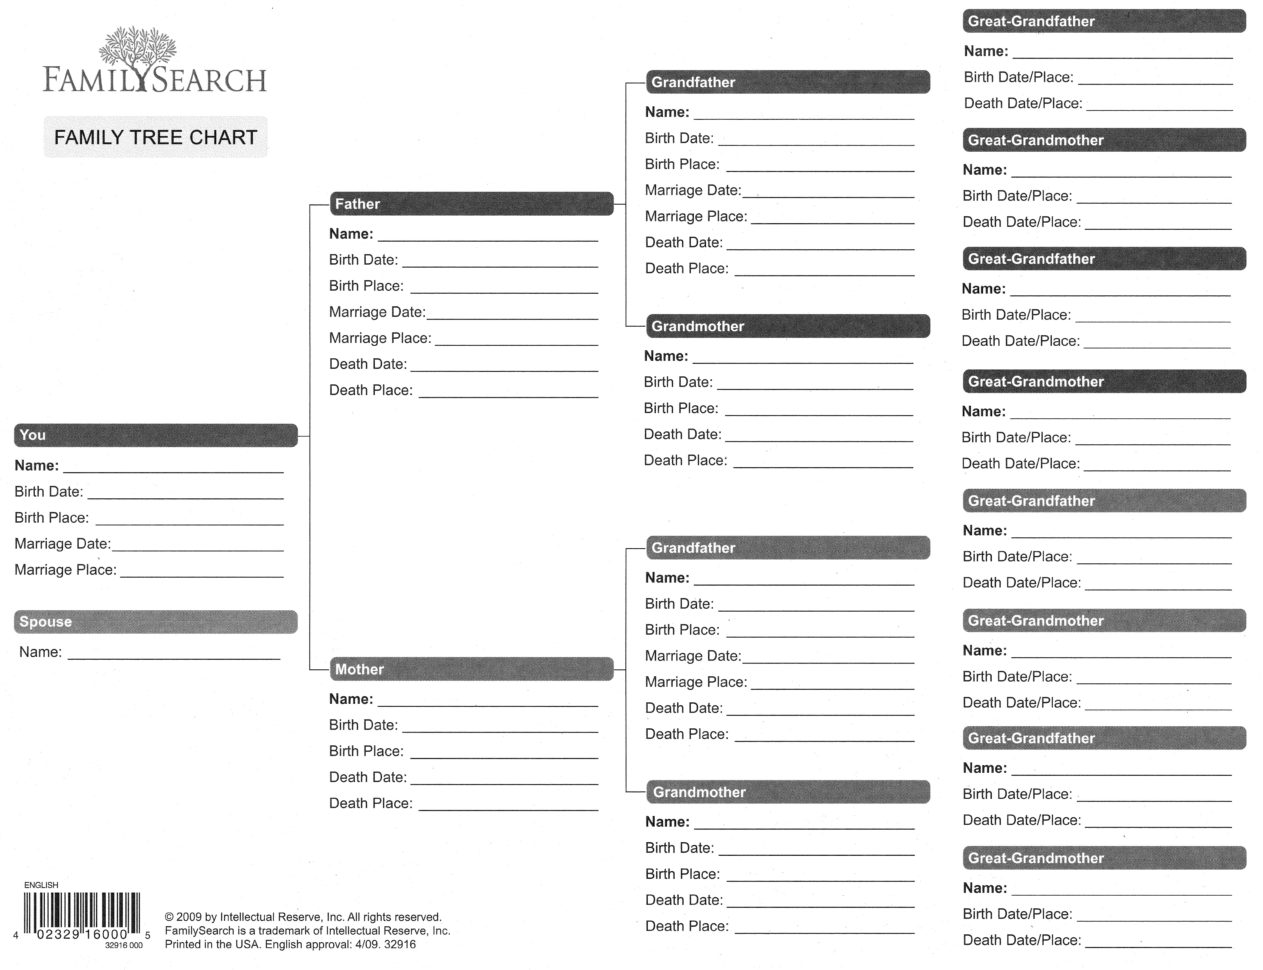 Family Tree Spreadsheet Free For Form Templates Free Forms Client Family Tree Unique For Power Of